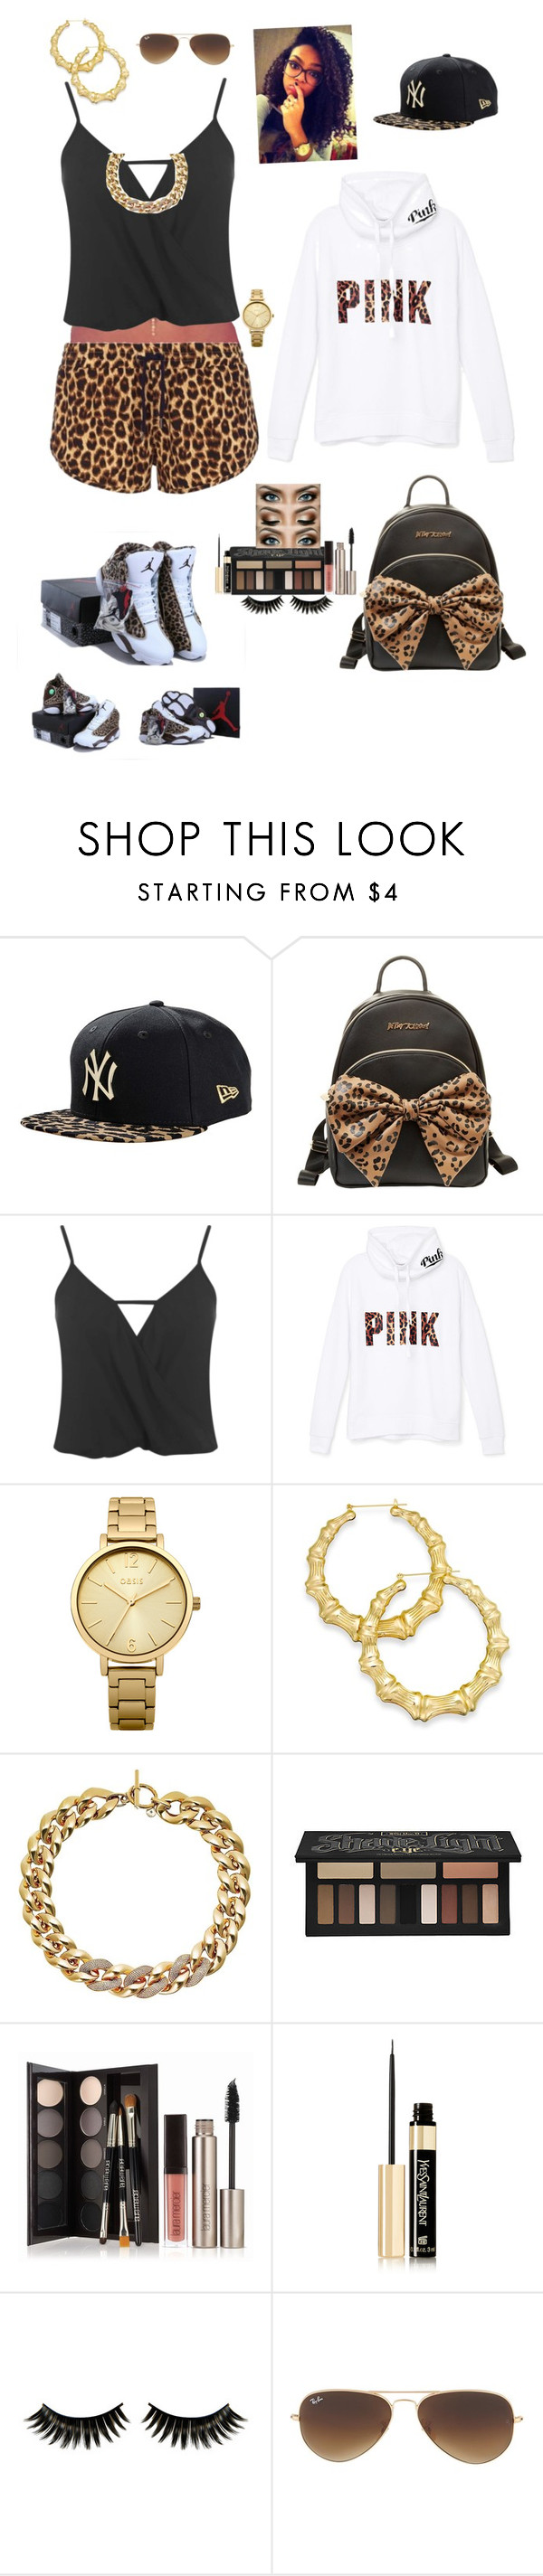 """Leopard girl #2"" by kenni8 ❤ liked on Polyvore featuring NIKE, New Era, Betsey Johnson, Miss Selfridge, Victoria's Secret PINK, Oasis, Thalia Sodi, Michael Kors, Kat Von D and Laura Mercier"